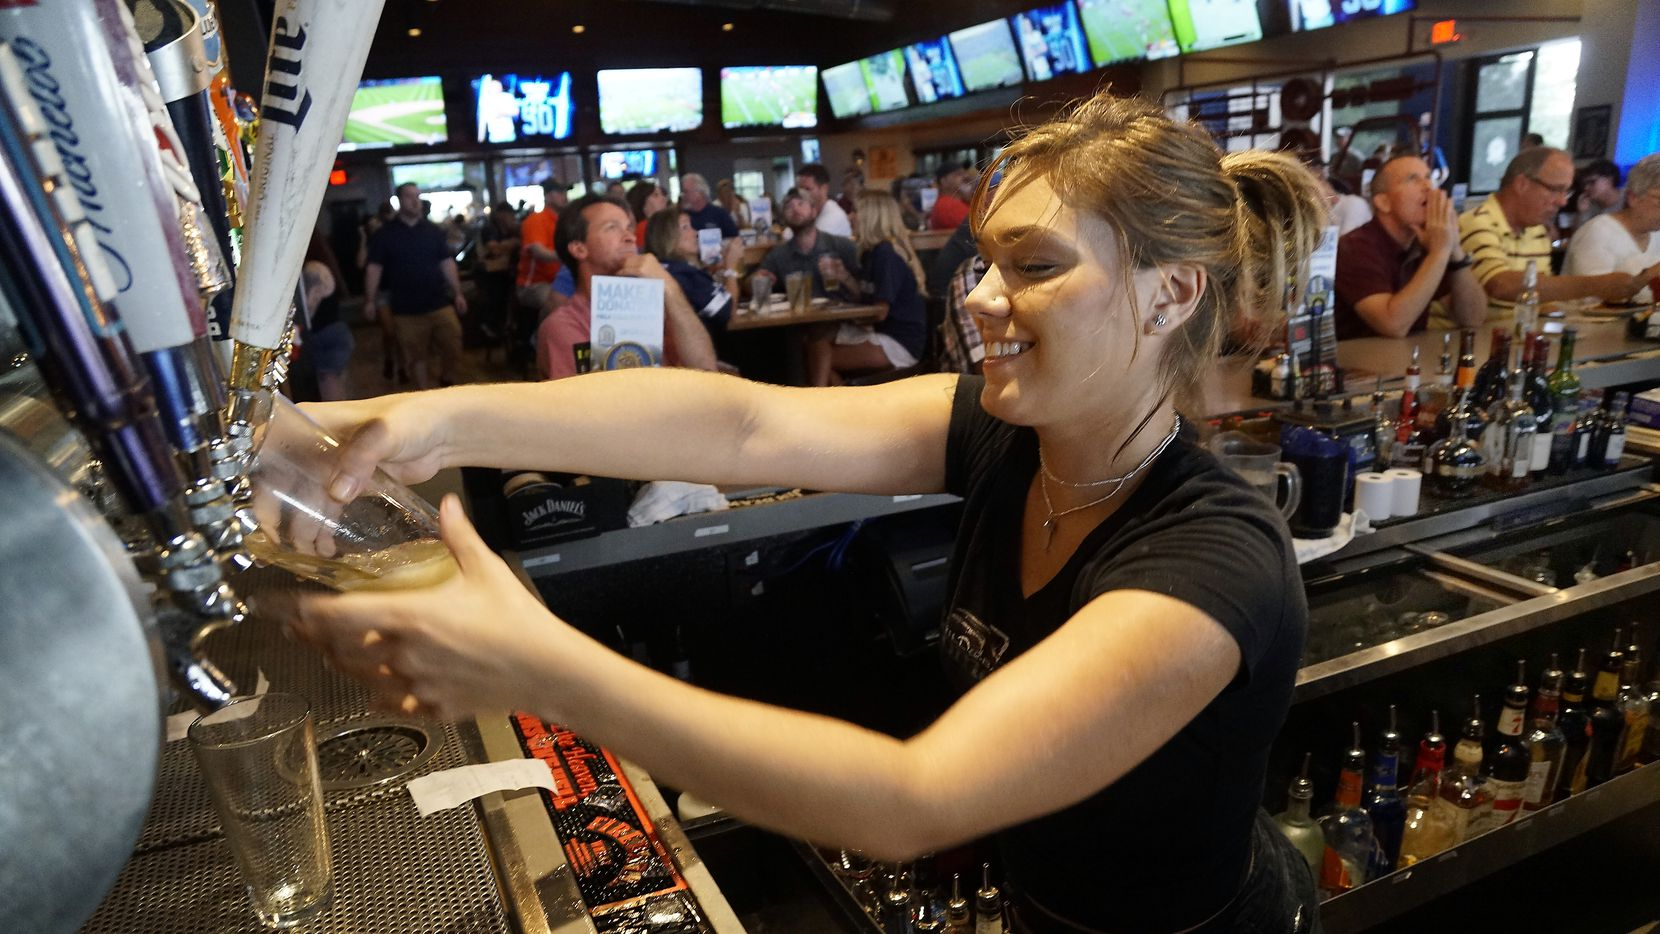 Bartender Tesla Silva waits on customers at BoomerJack's in Grapevine. The city's restaurants and bars reported more than $8 million in alcohol sales in May, up over 70% since the state fully reopened.